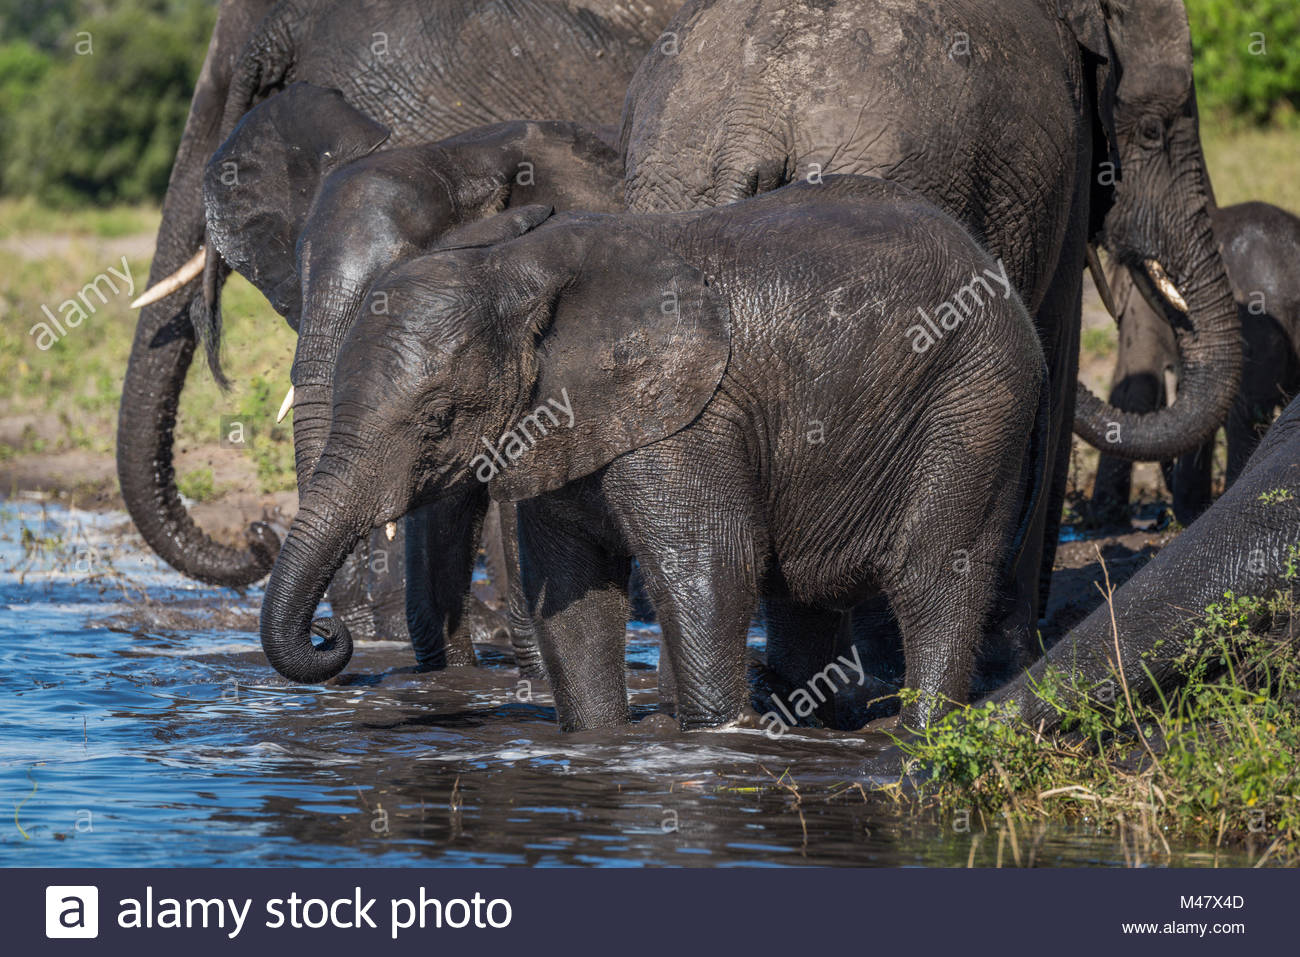 Herd of elephants drinking water in shallows Stock Photo